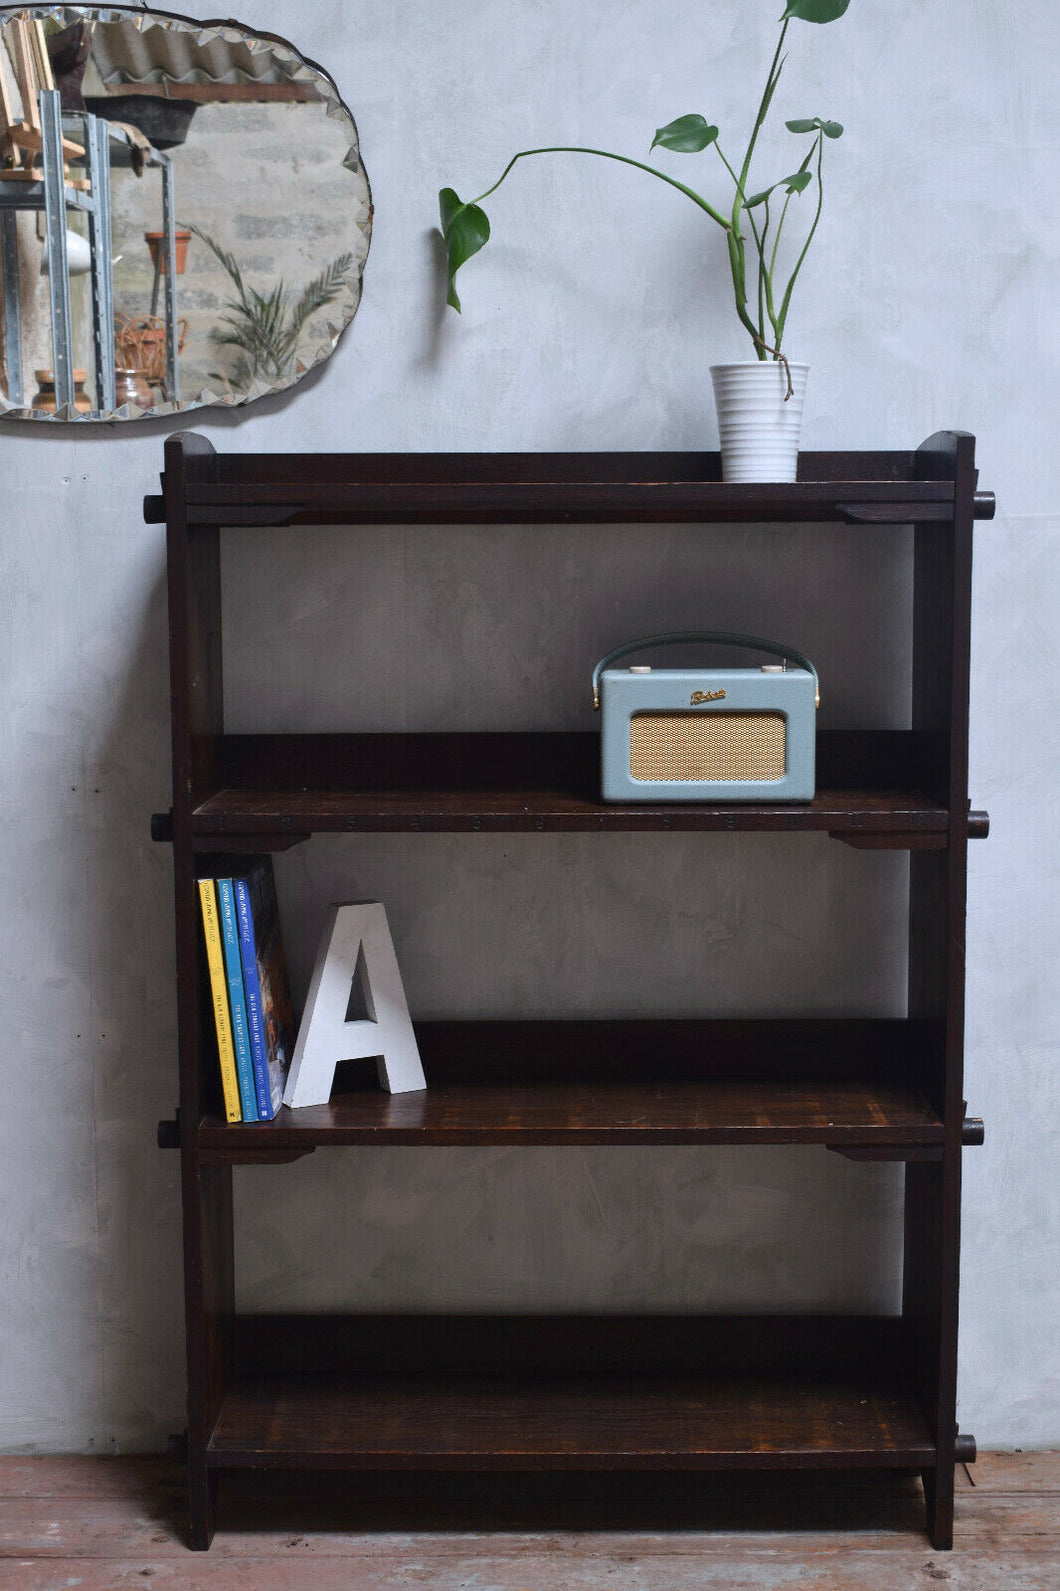 Antique Arts And Crafts Oak Shelving Unit With Peg Fixings